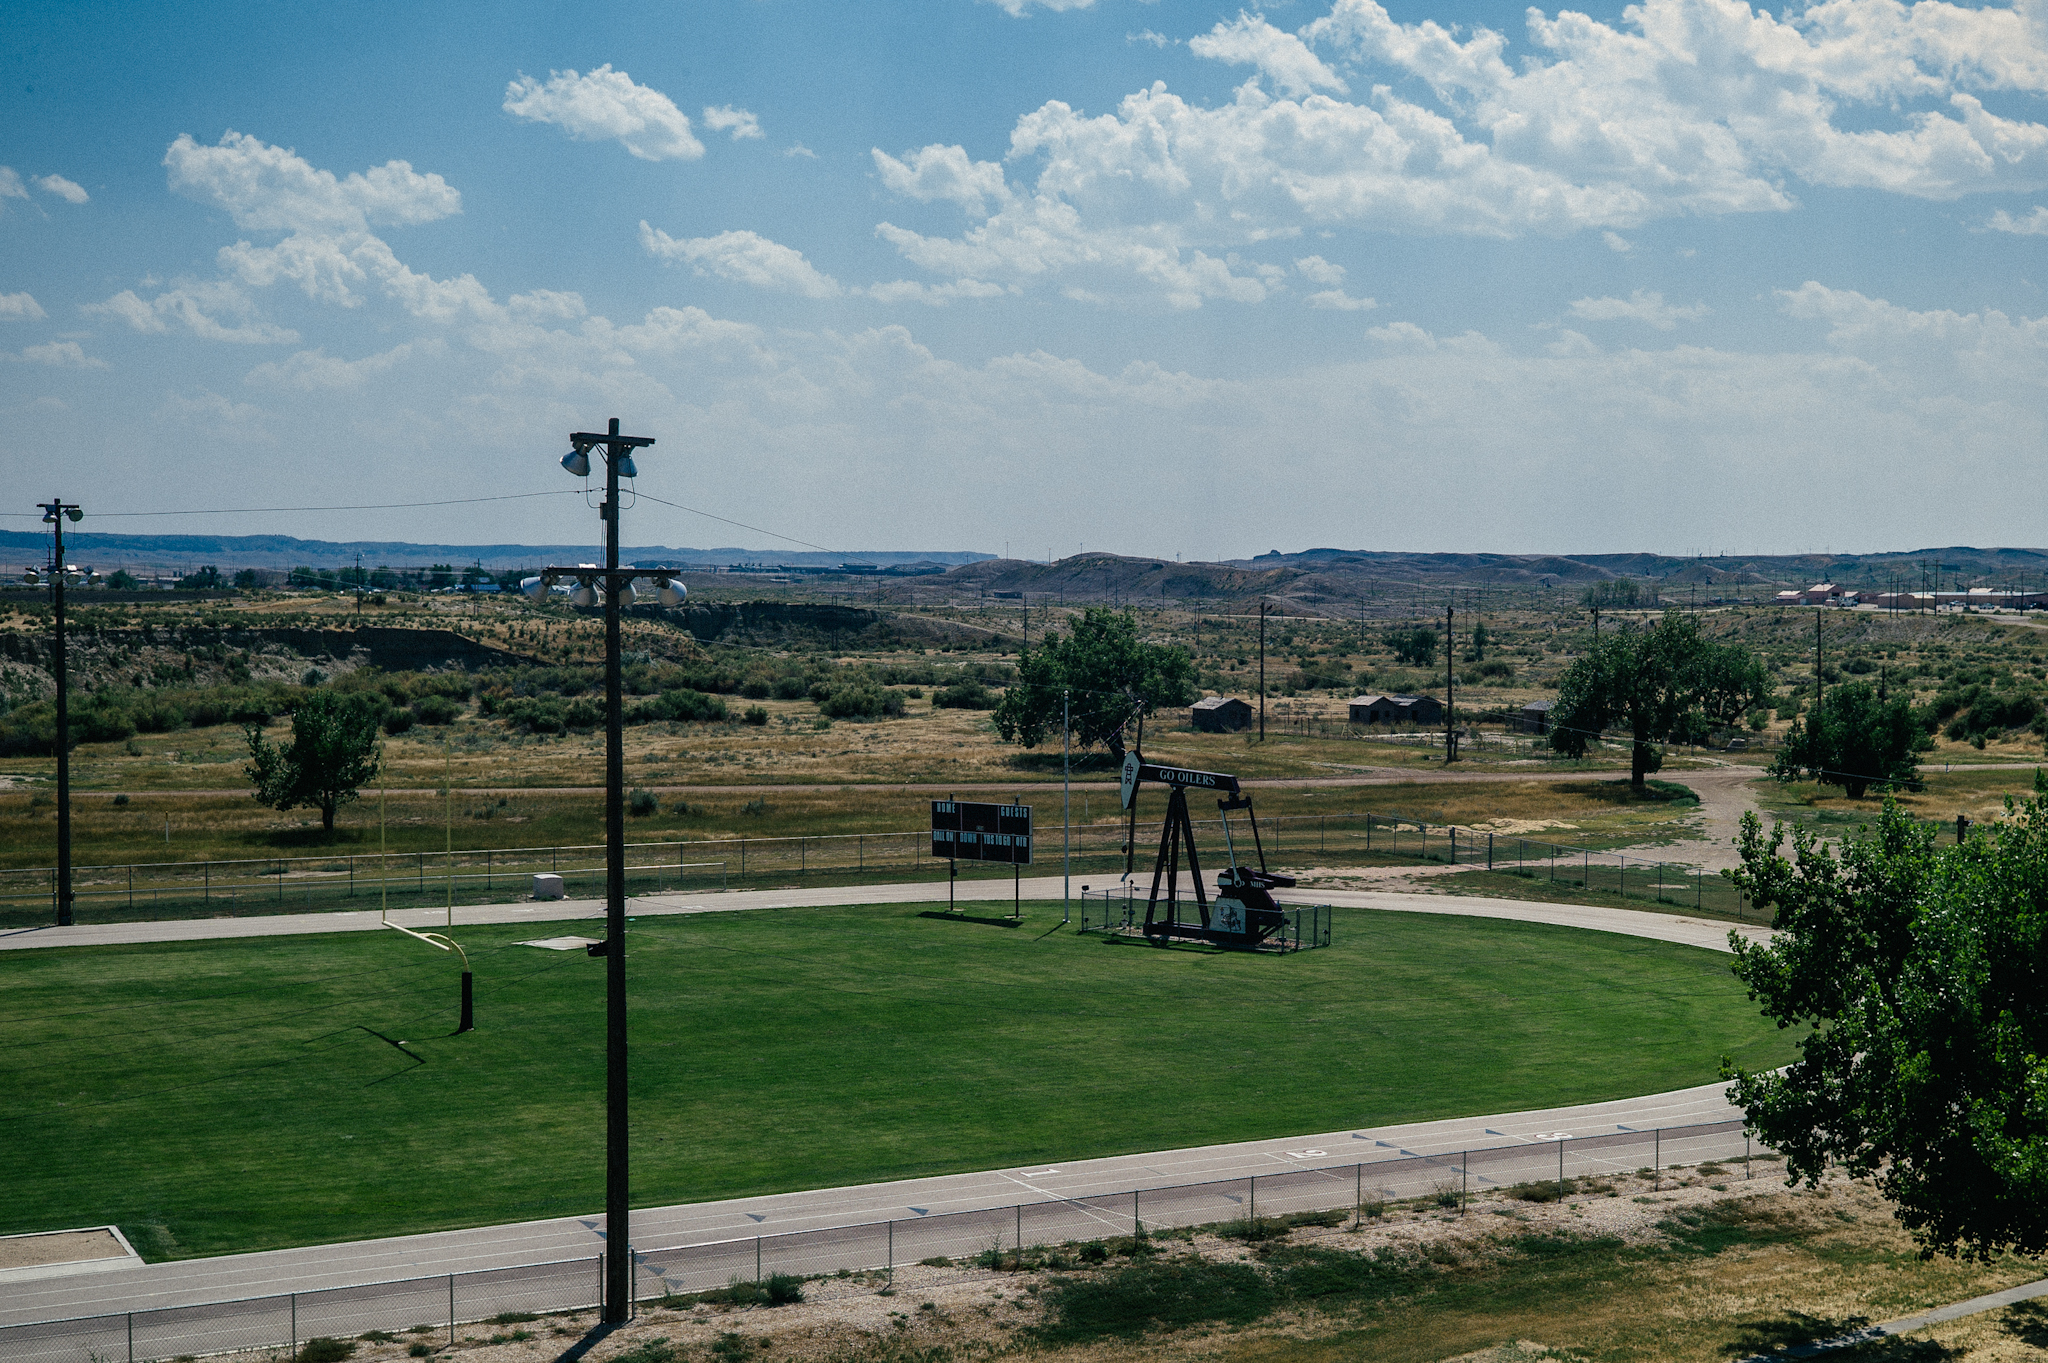 An oil pad stands on a high school track field in Midwest, Wyoming.